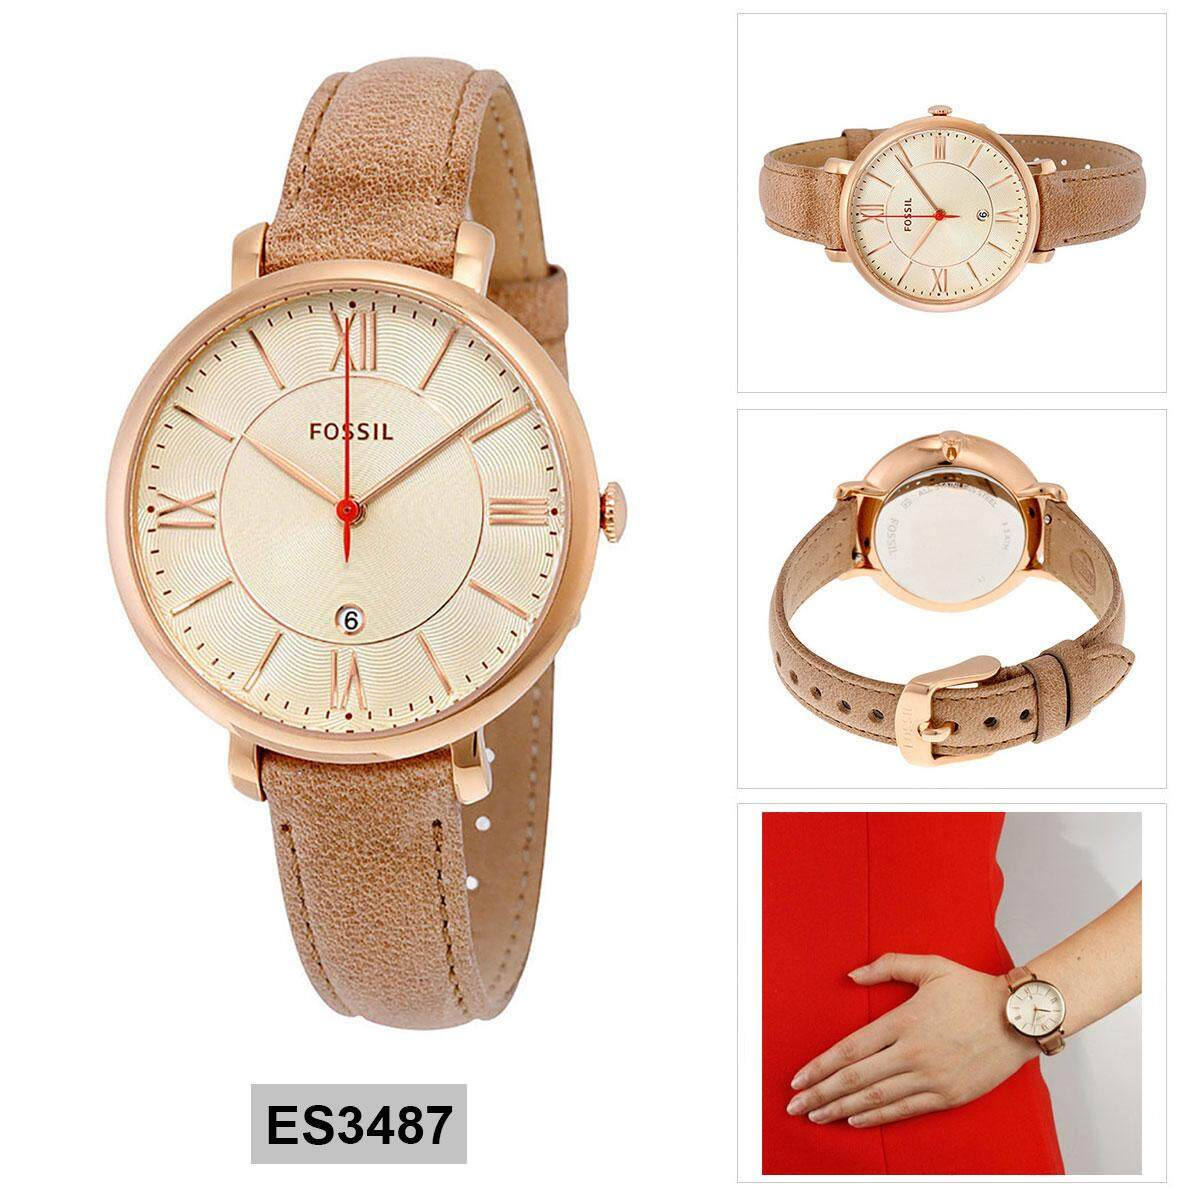 Buy Sell Cheapest Fossil Women Jacqueline Best Quality Product Jam Tangan Wanita Original Es3737 Tan Leather Brown Stainless Steel Case Strap Ladies Es3487